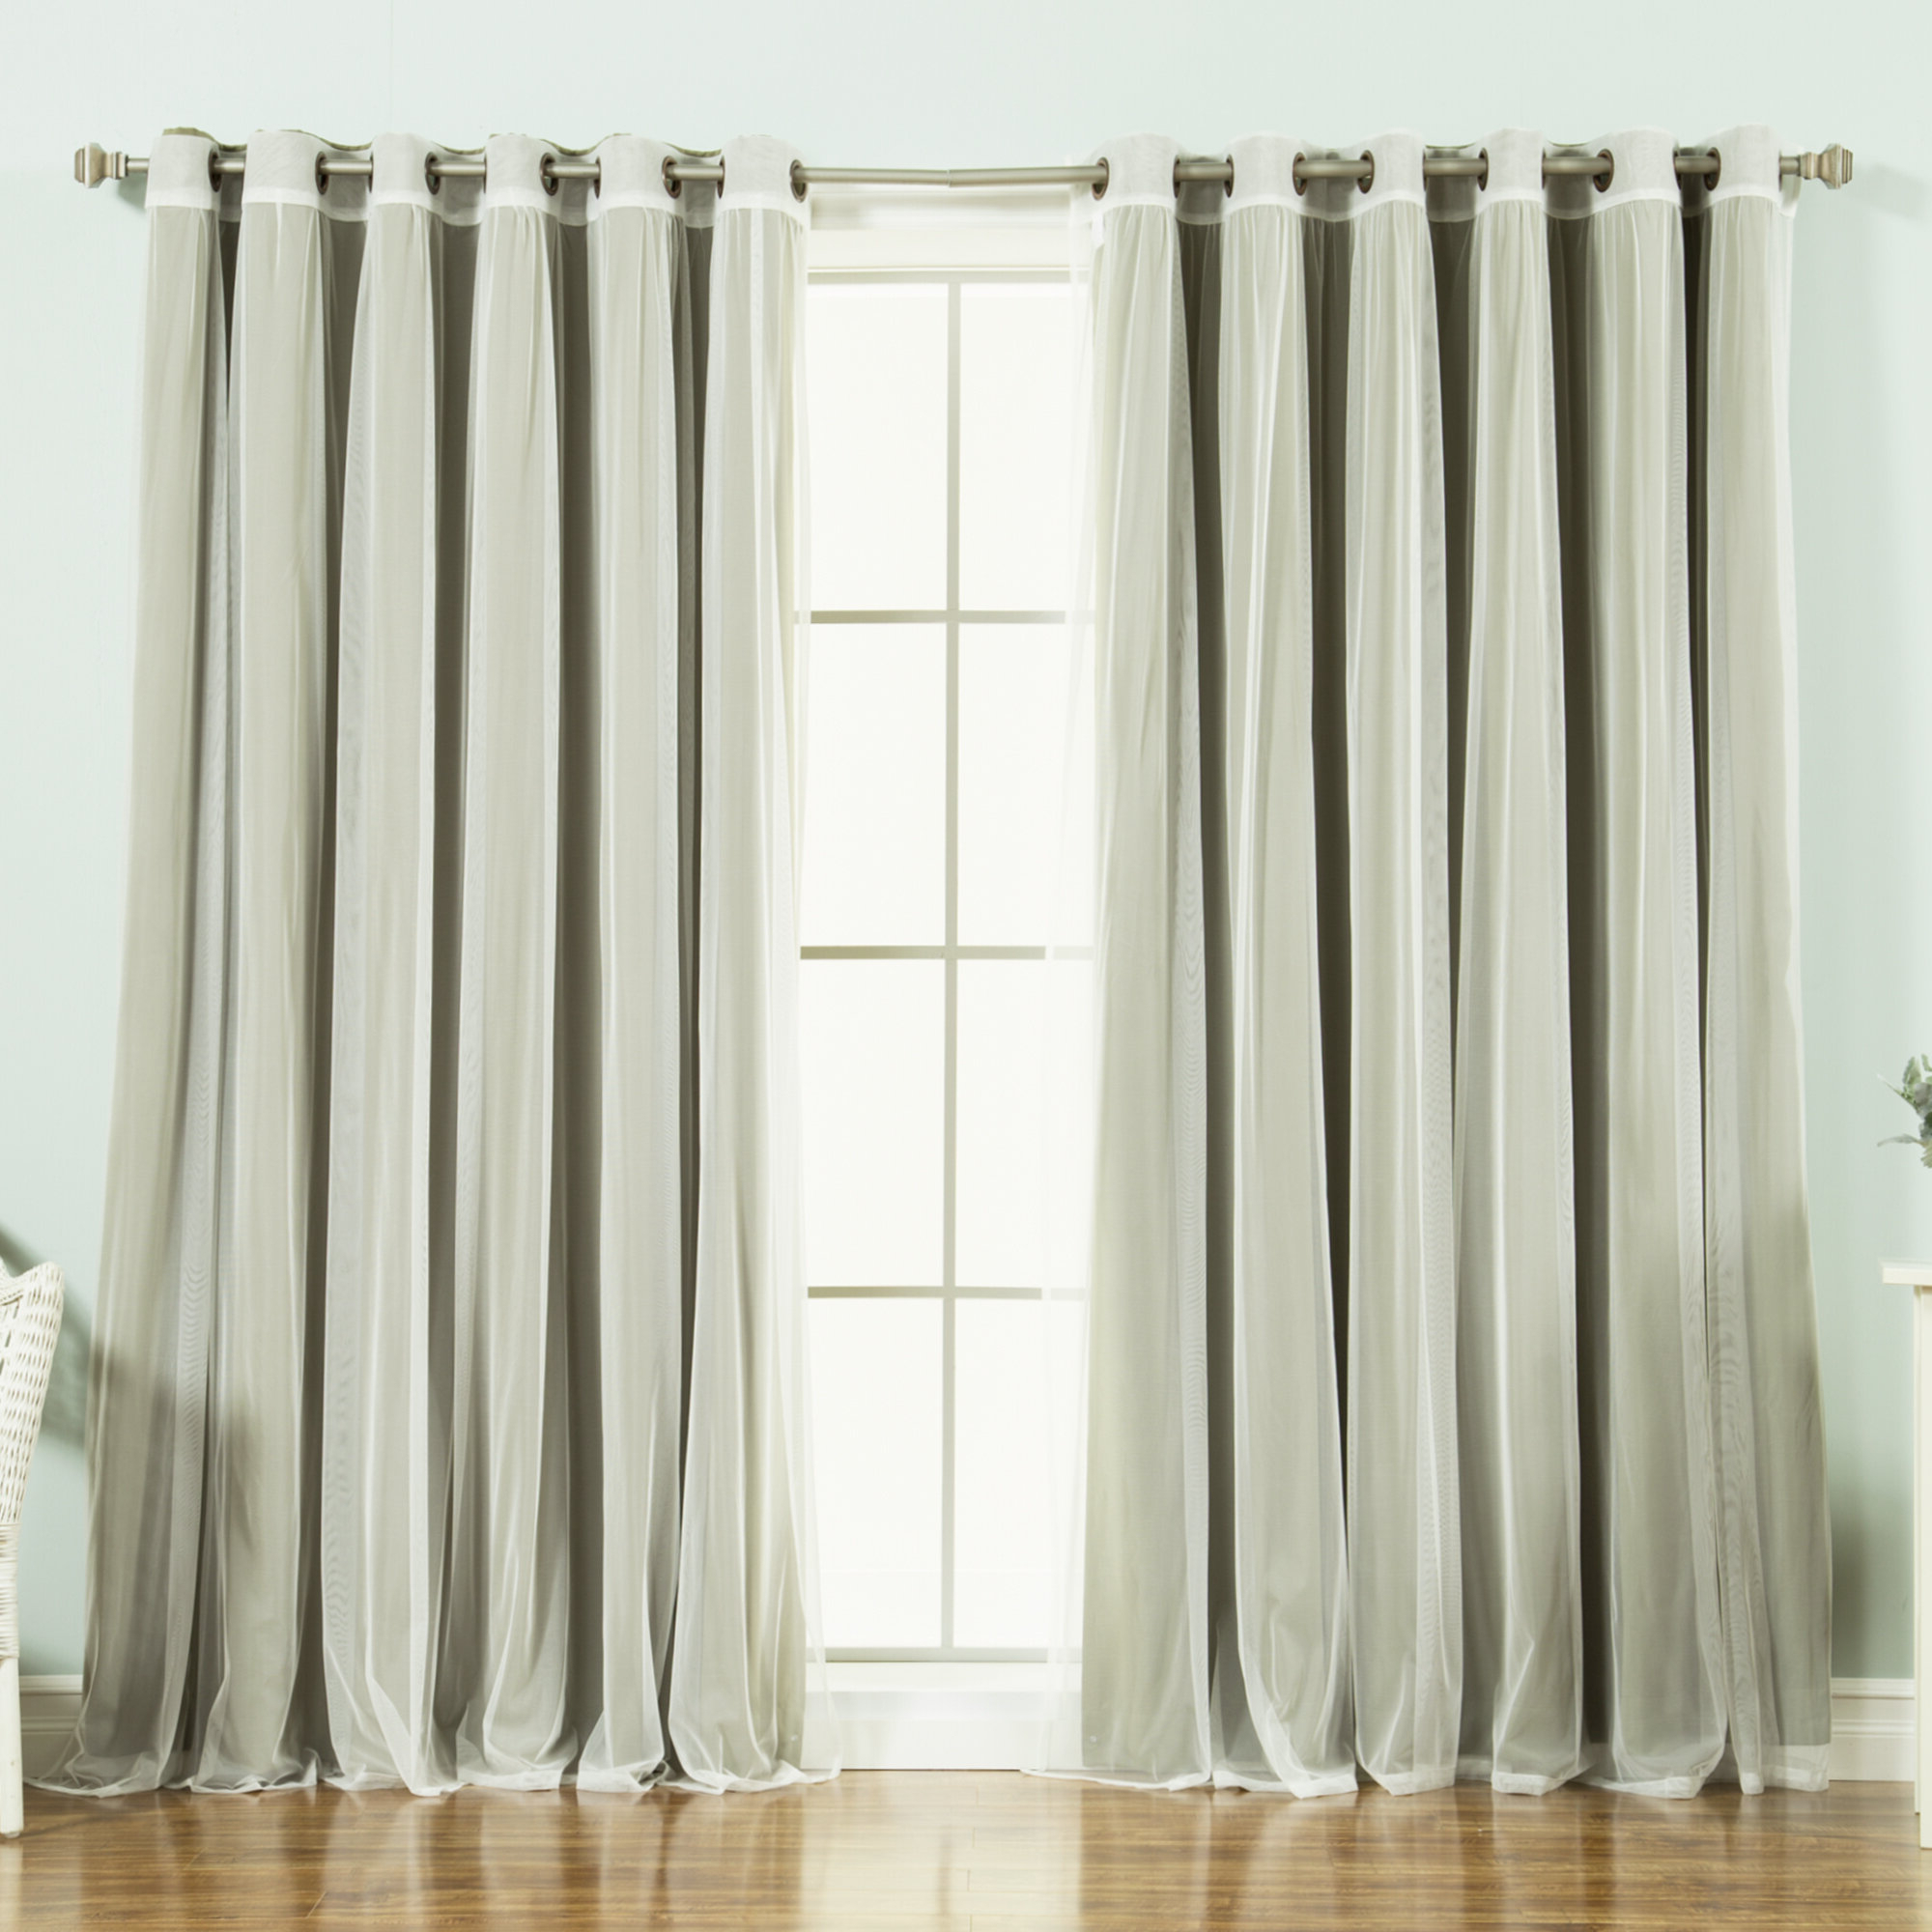 Mix & Match Blackout Tulle Lace Bronze Grommet Curtain Panel Sets Inside Well Known Brunilda Solid Blackout Thermal Grommet Curtain Panels (View 19 of 20)